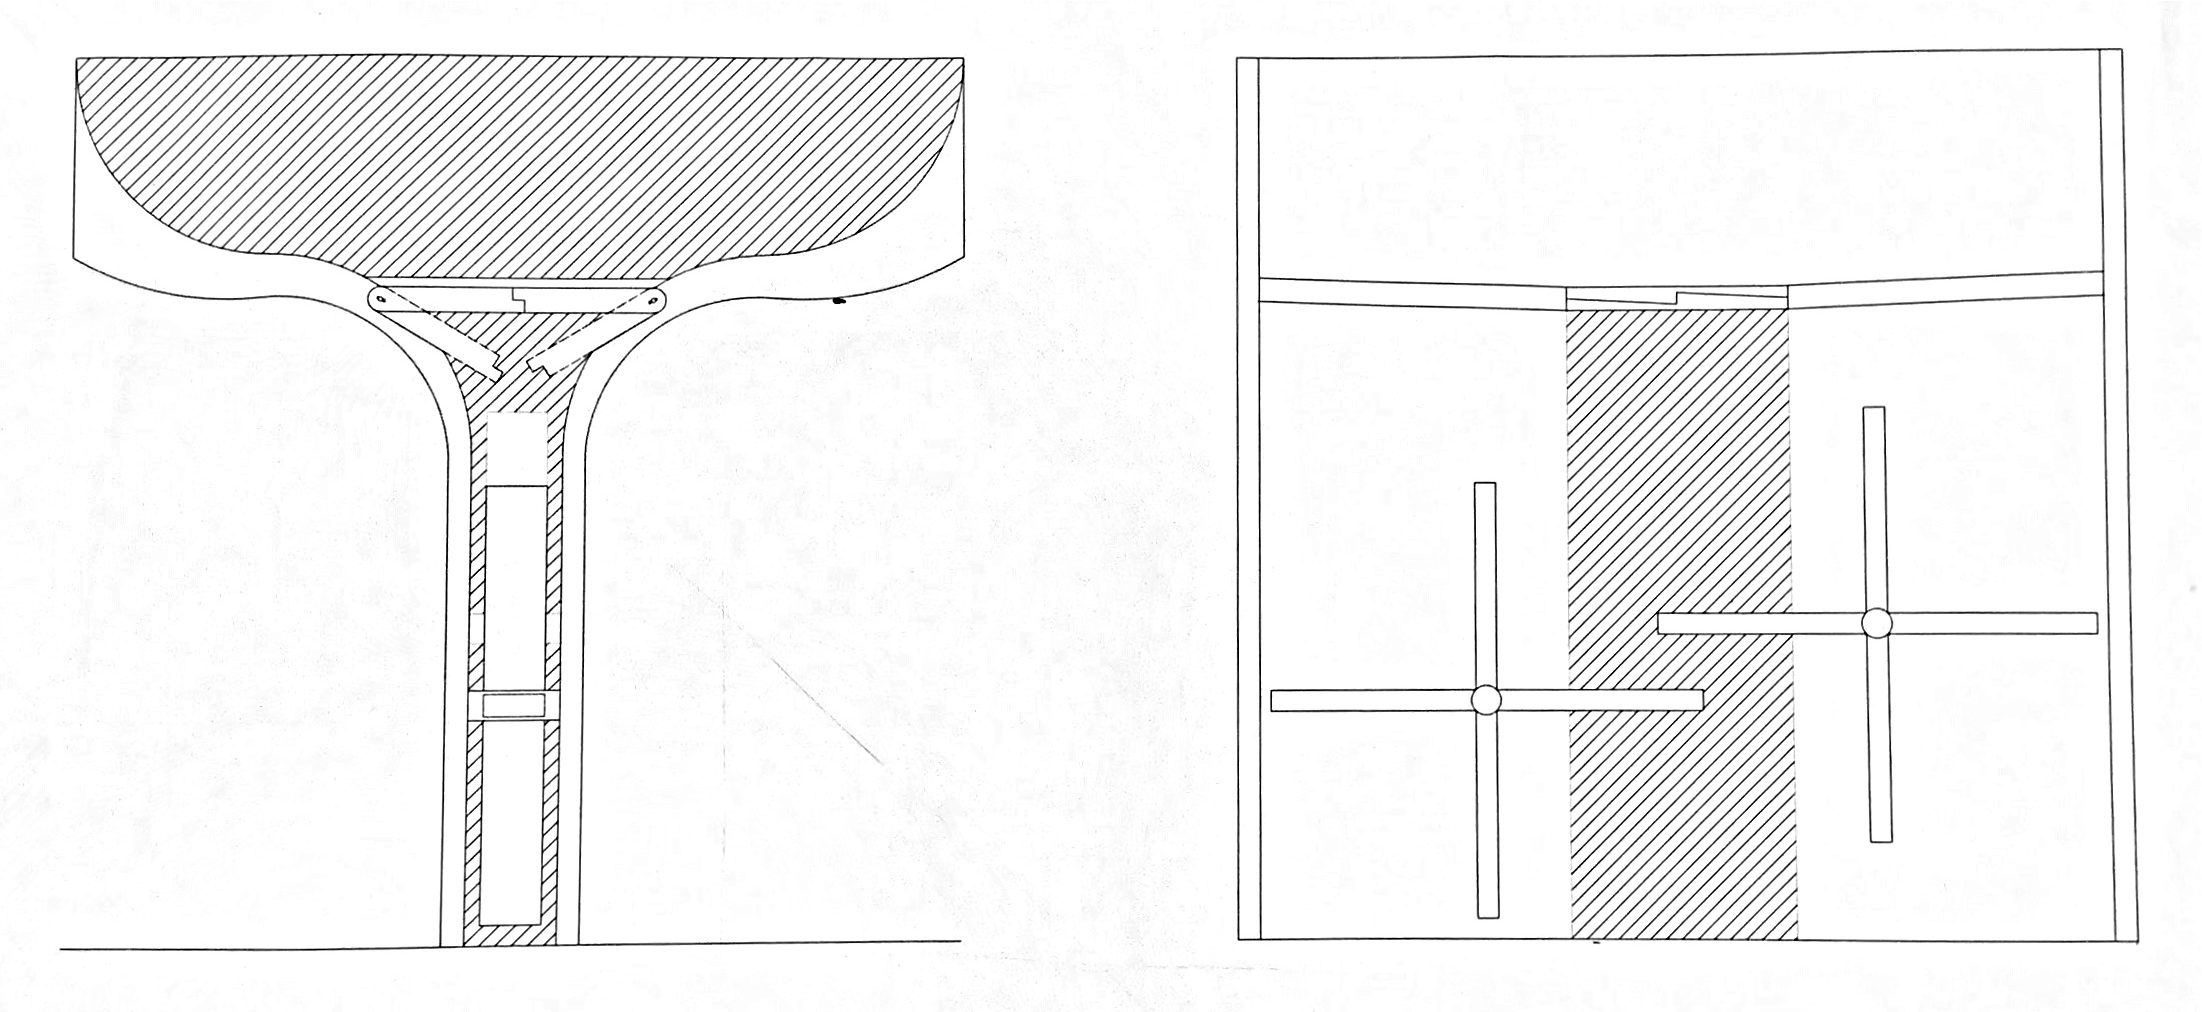 Section drawing of roof that collects water